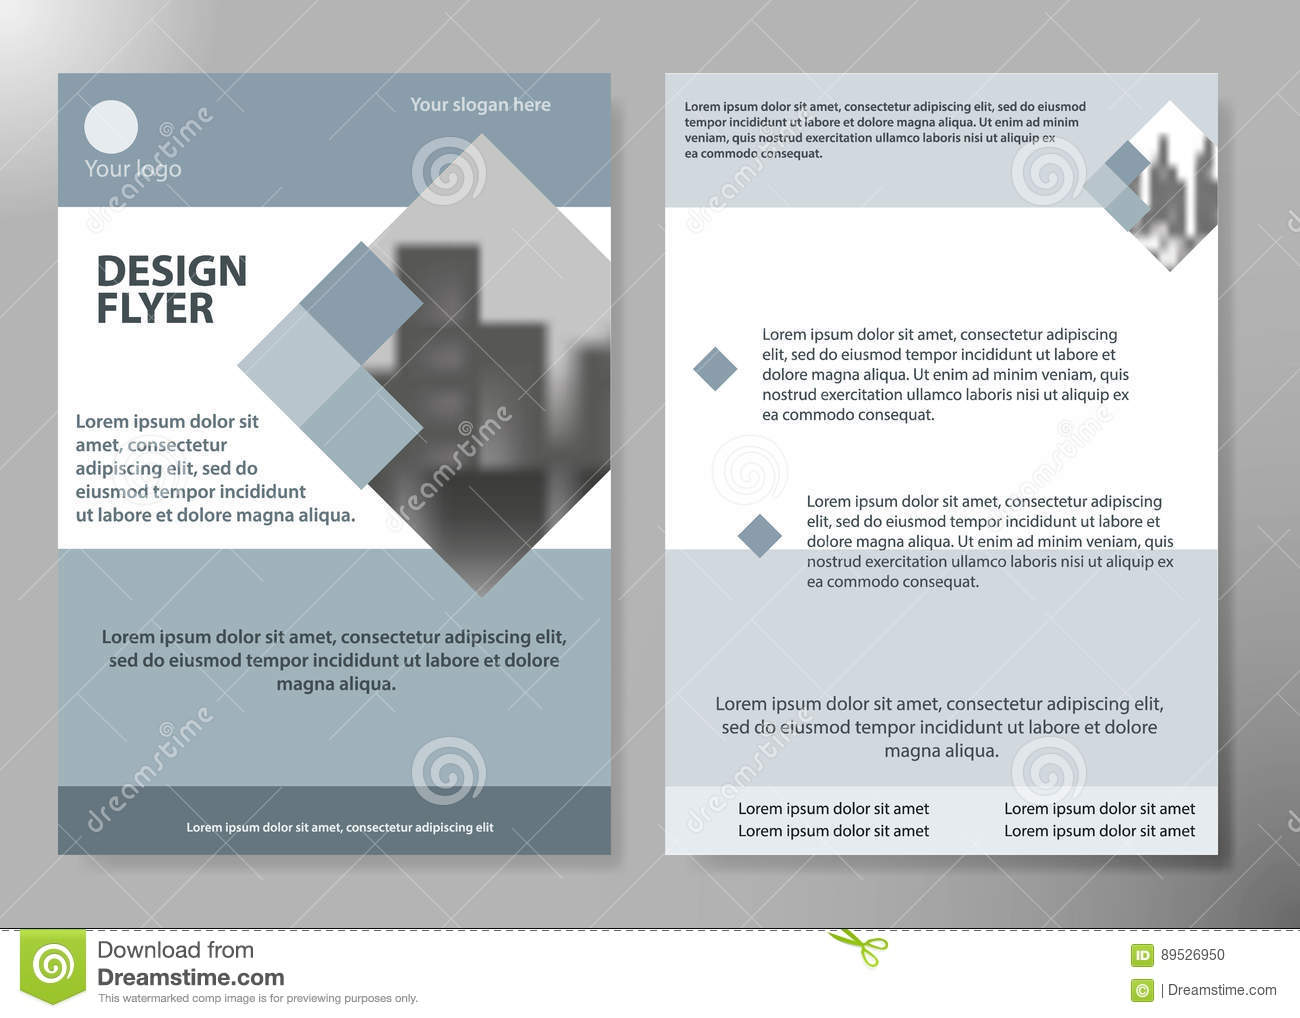 Minimal flyers report business magazine poster layout portfolio download minimal flyers report business magazine poster layout portfolio templateochure design template vector friedricerecipe Images